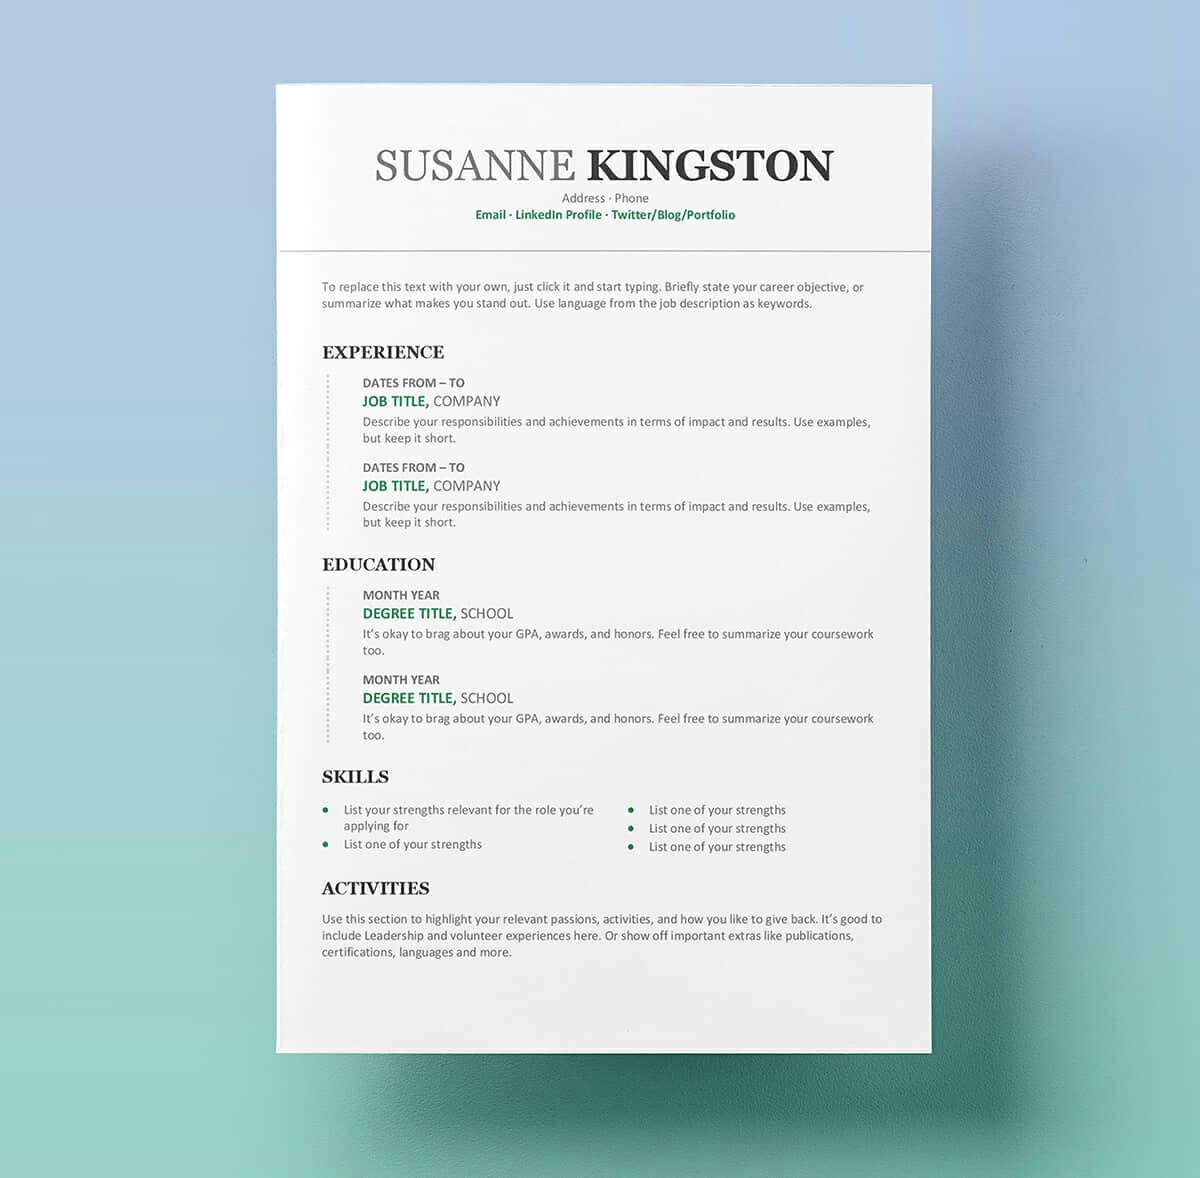 Words to Describe Yourself Resume - 54 Fresh Resume Templates for Word 2010